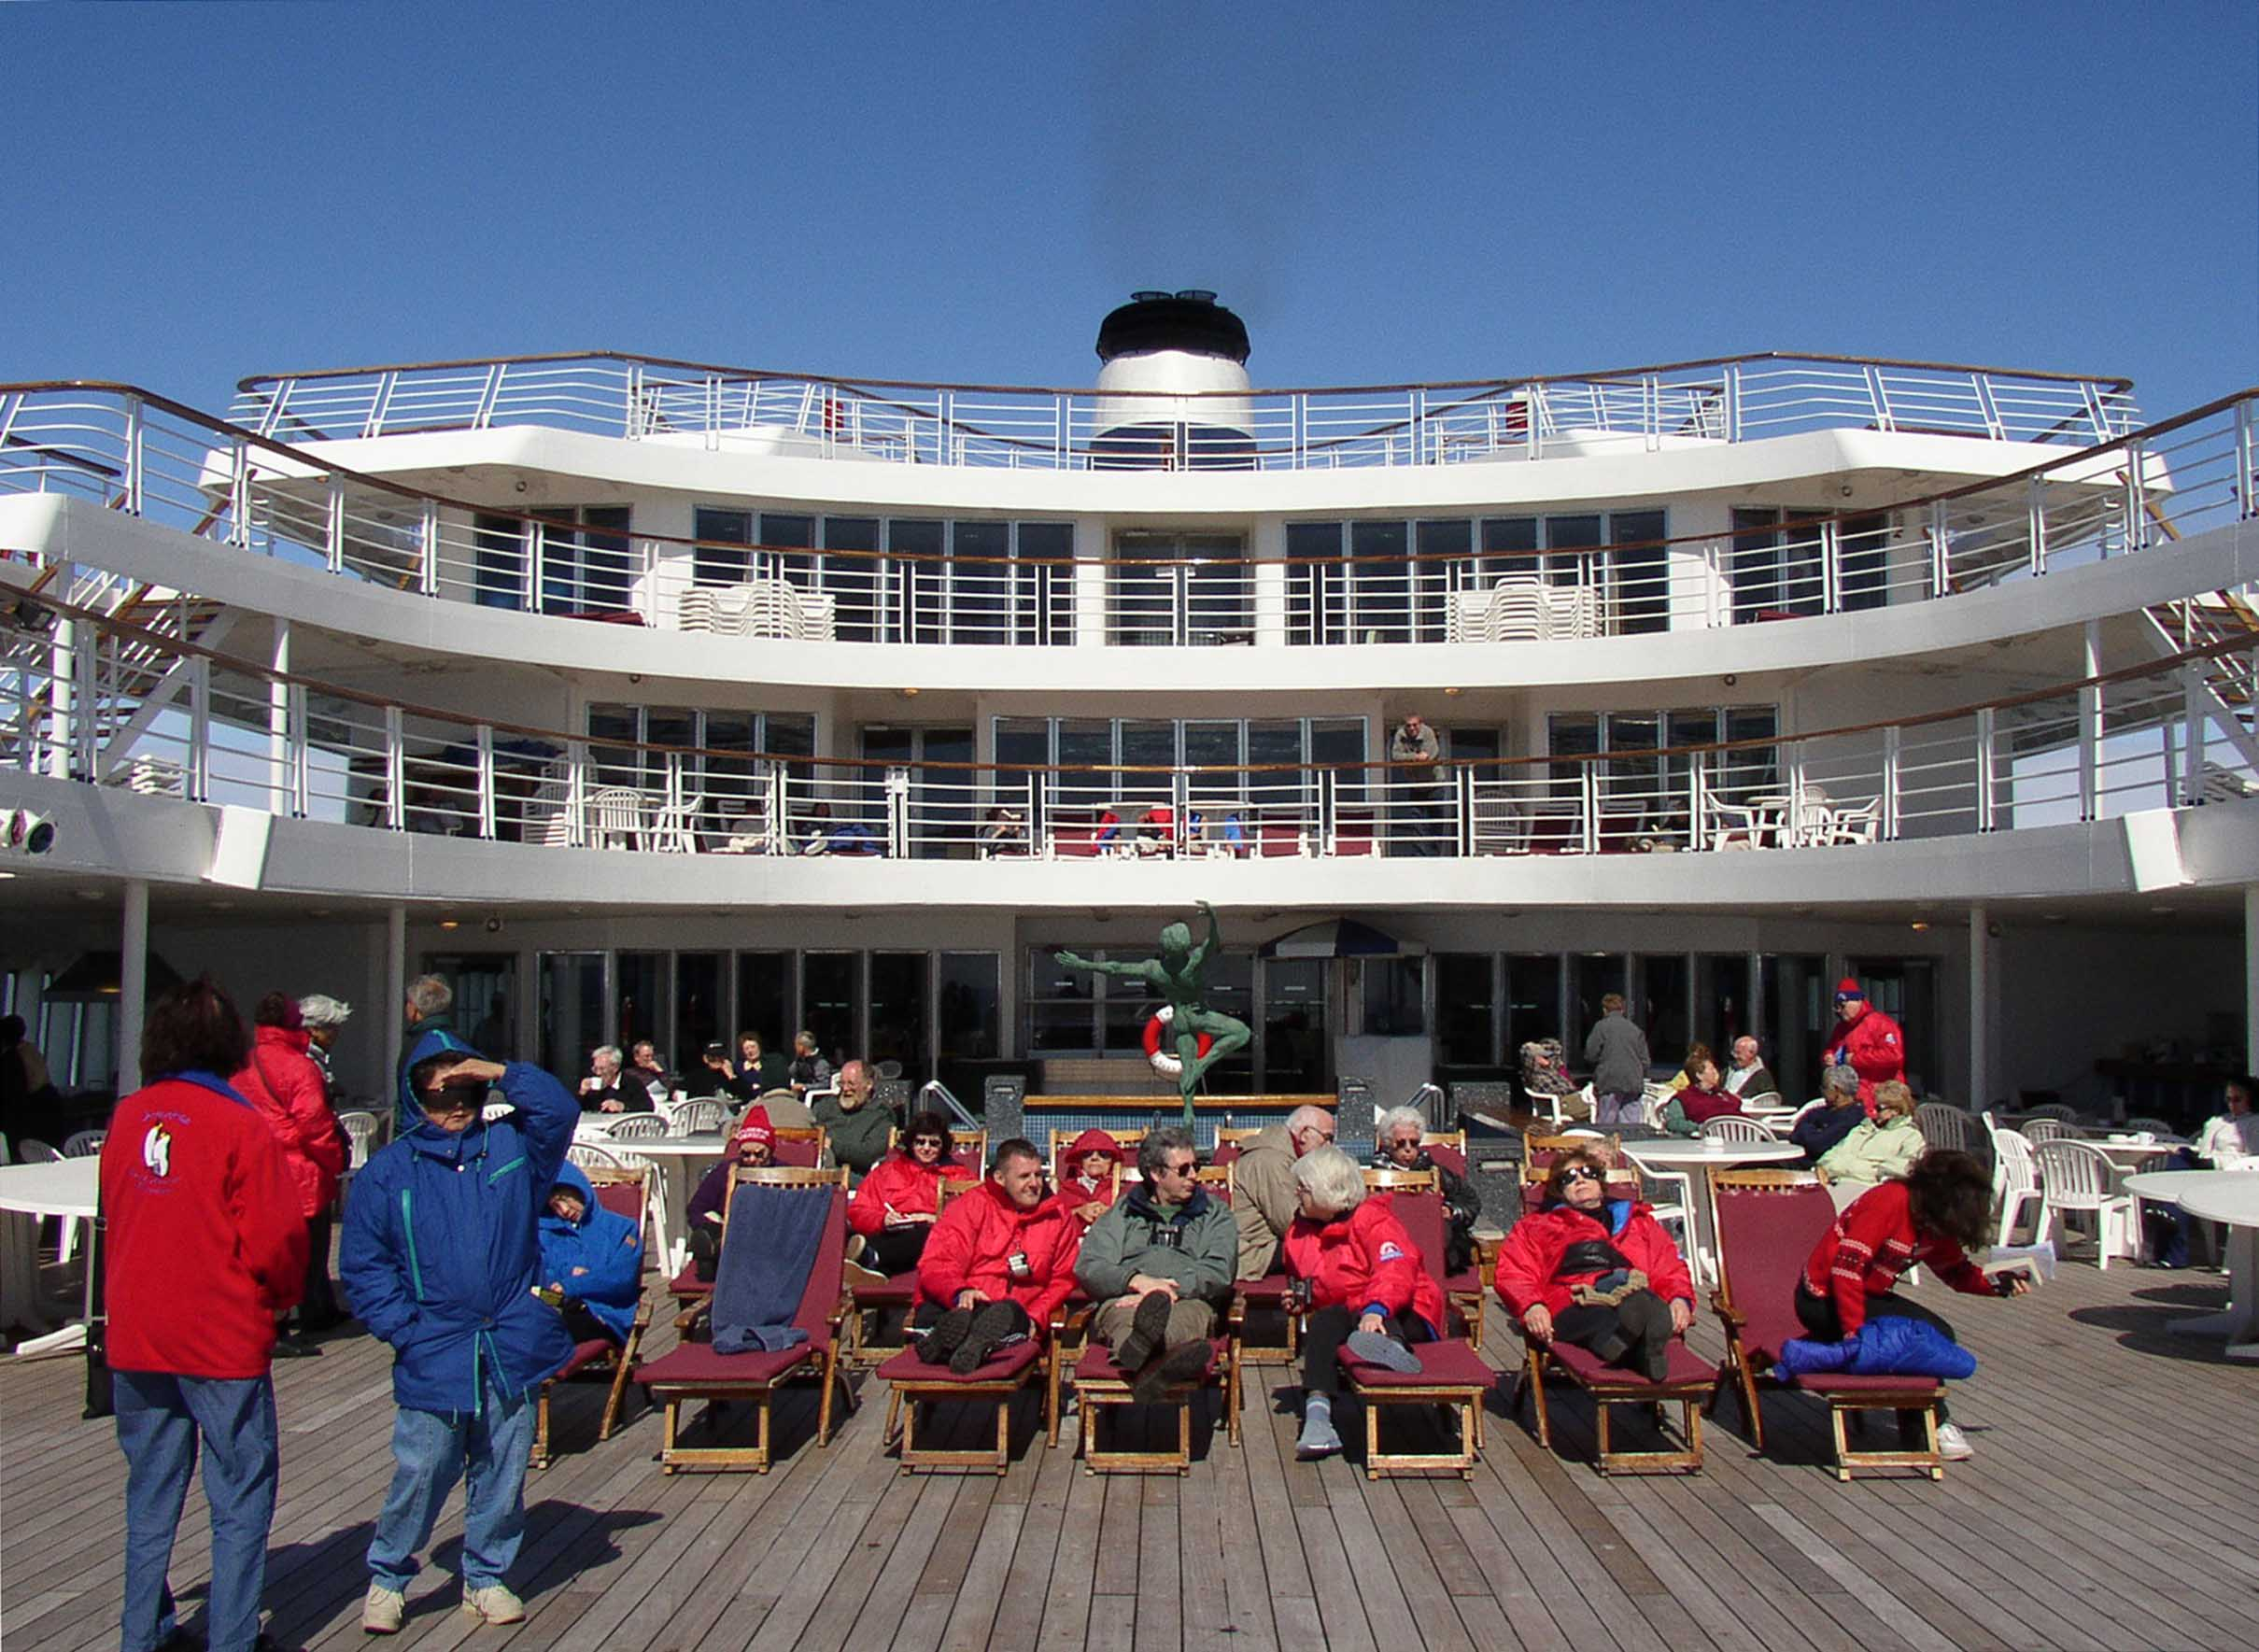 People relaxing on loungers on a ship, wearing warm clothes